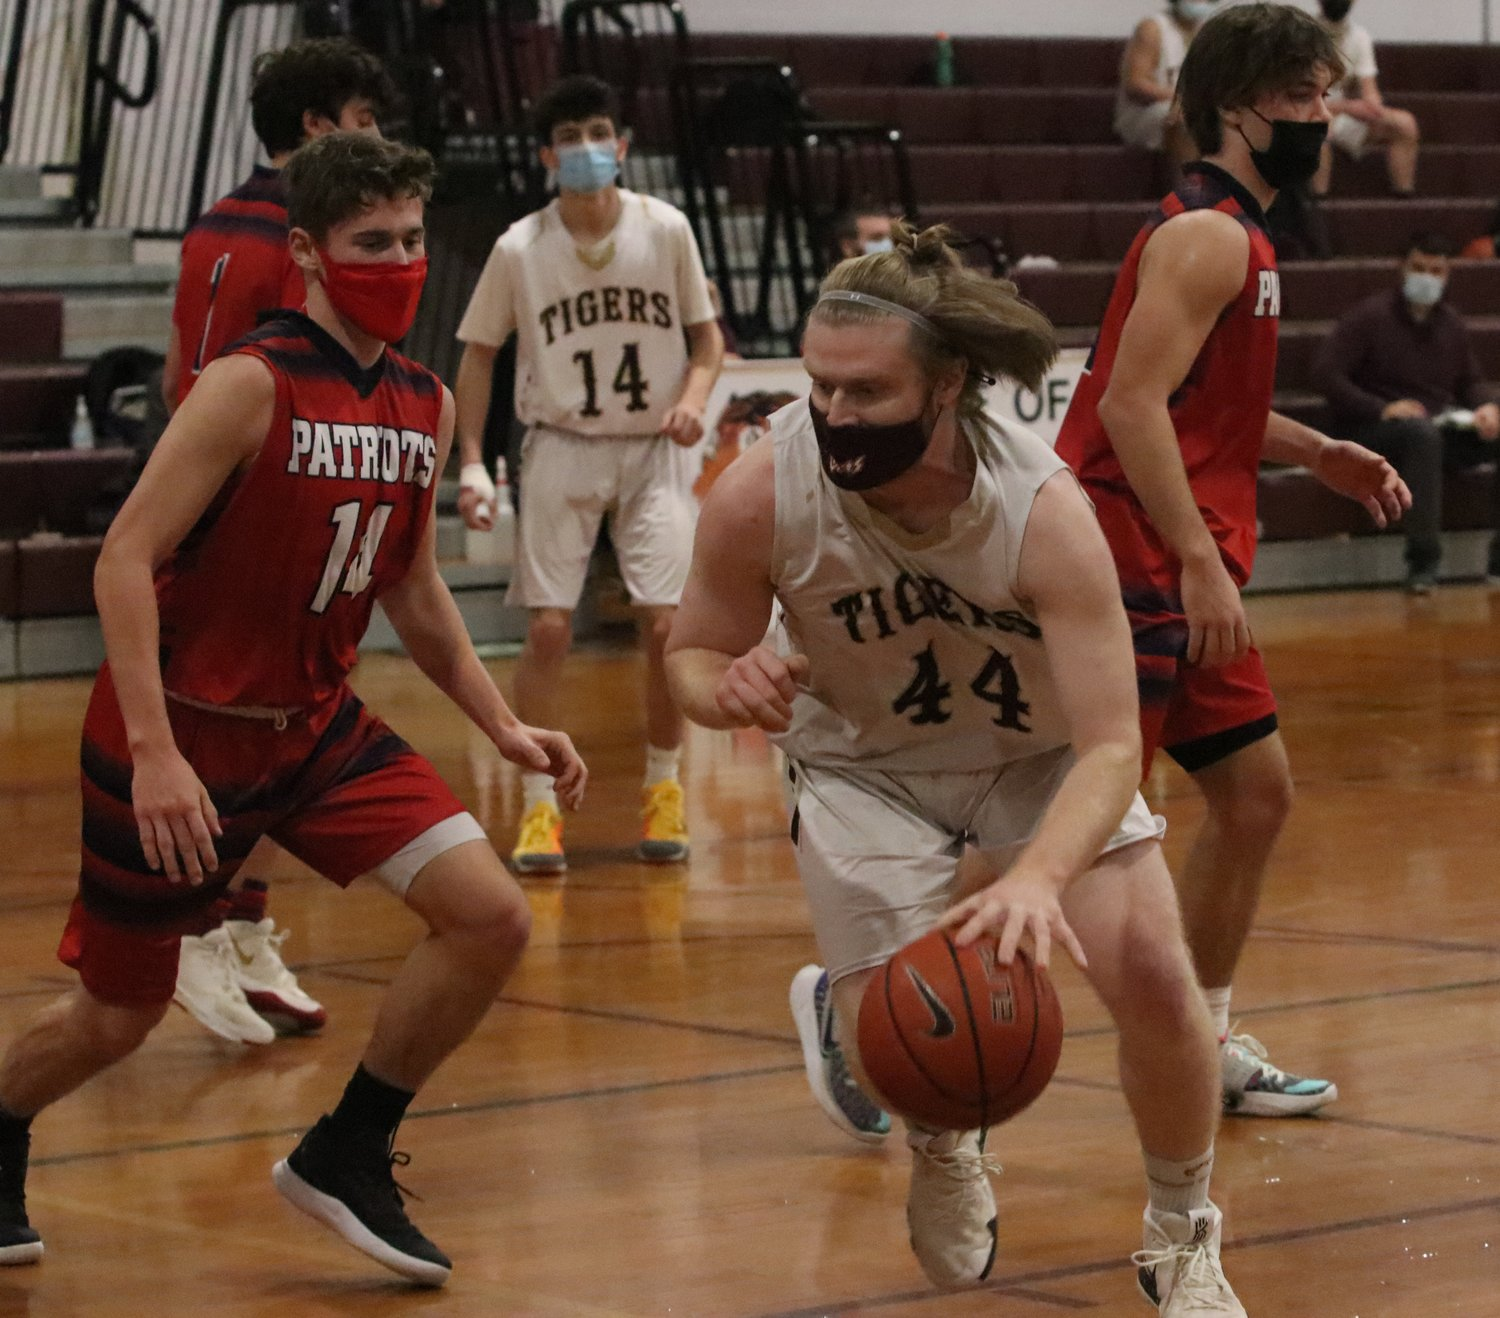 Senior Will Gerlach puts the ball on the floor and makes a move to the inside.